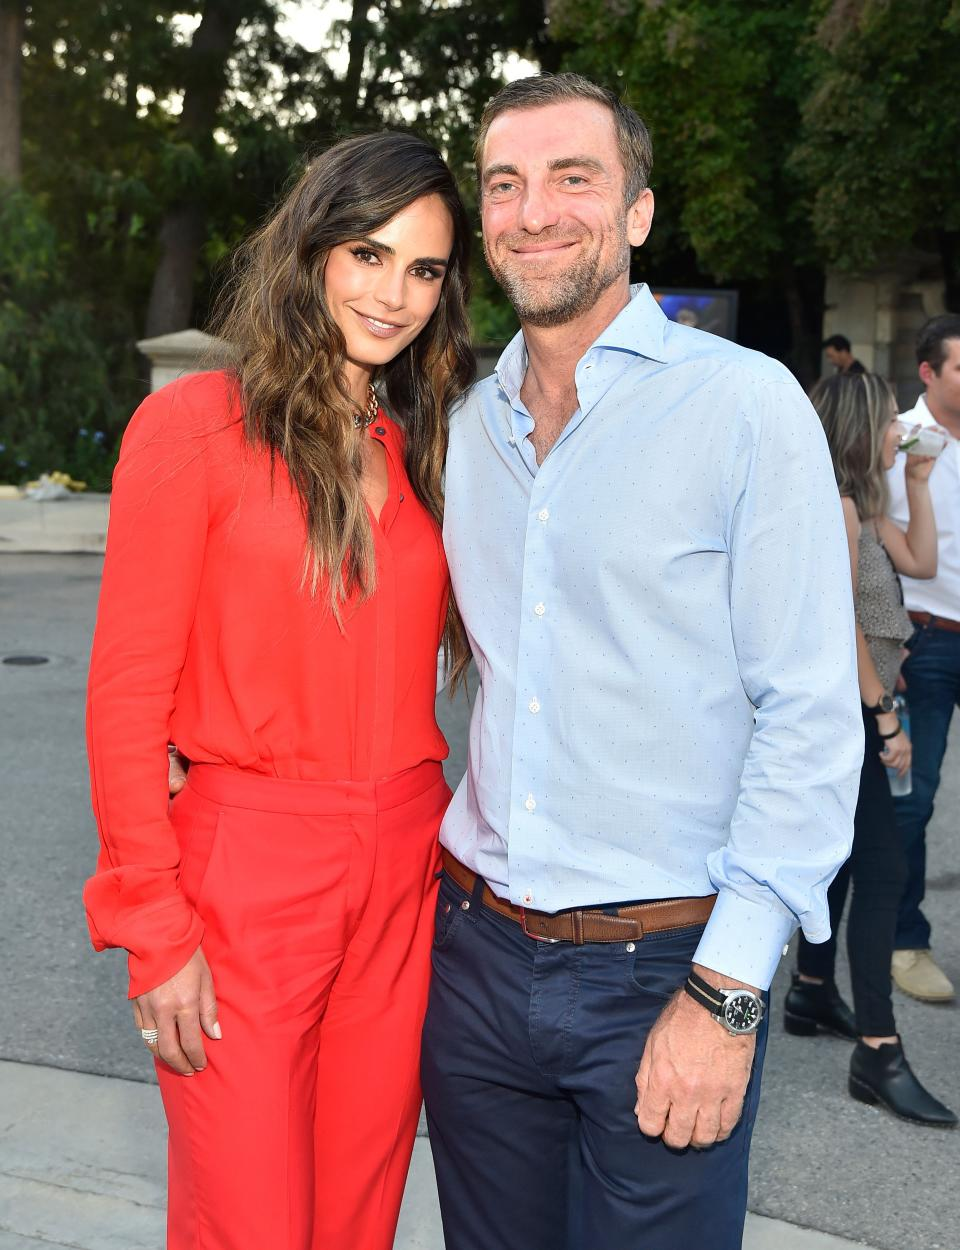 UNIVERSAL CITY, CALIFORNIA - JUNE 26: (L-R) Jordana Brewster and Mason Morfit attend CTAOP's Night Out on June 26, 2021 in Universal City, California. (Photo by Stefanie Keenan/Getty Images for CTAOP)